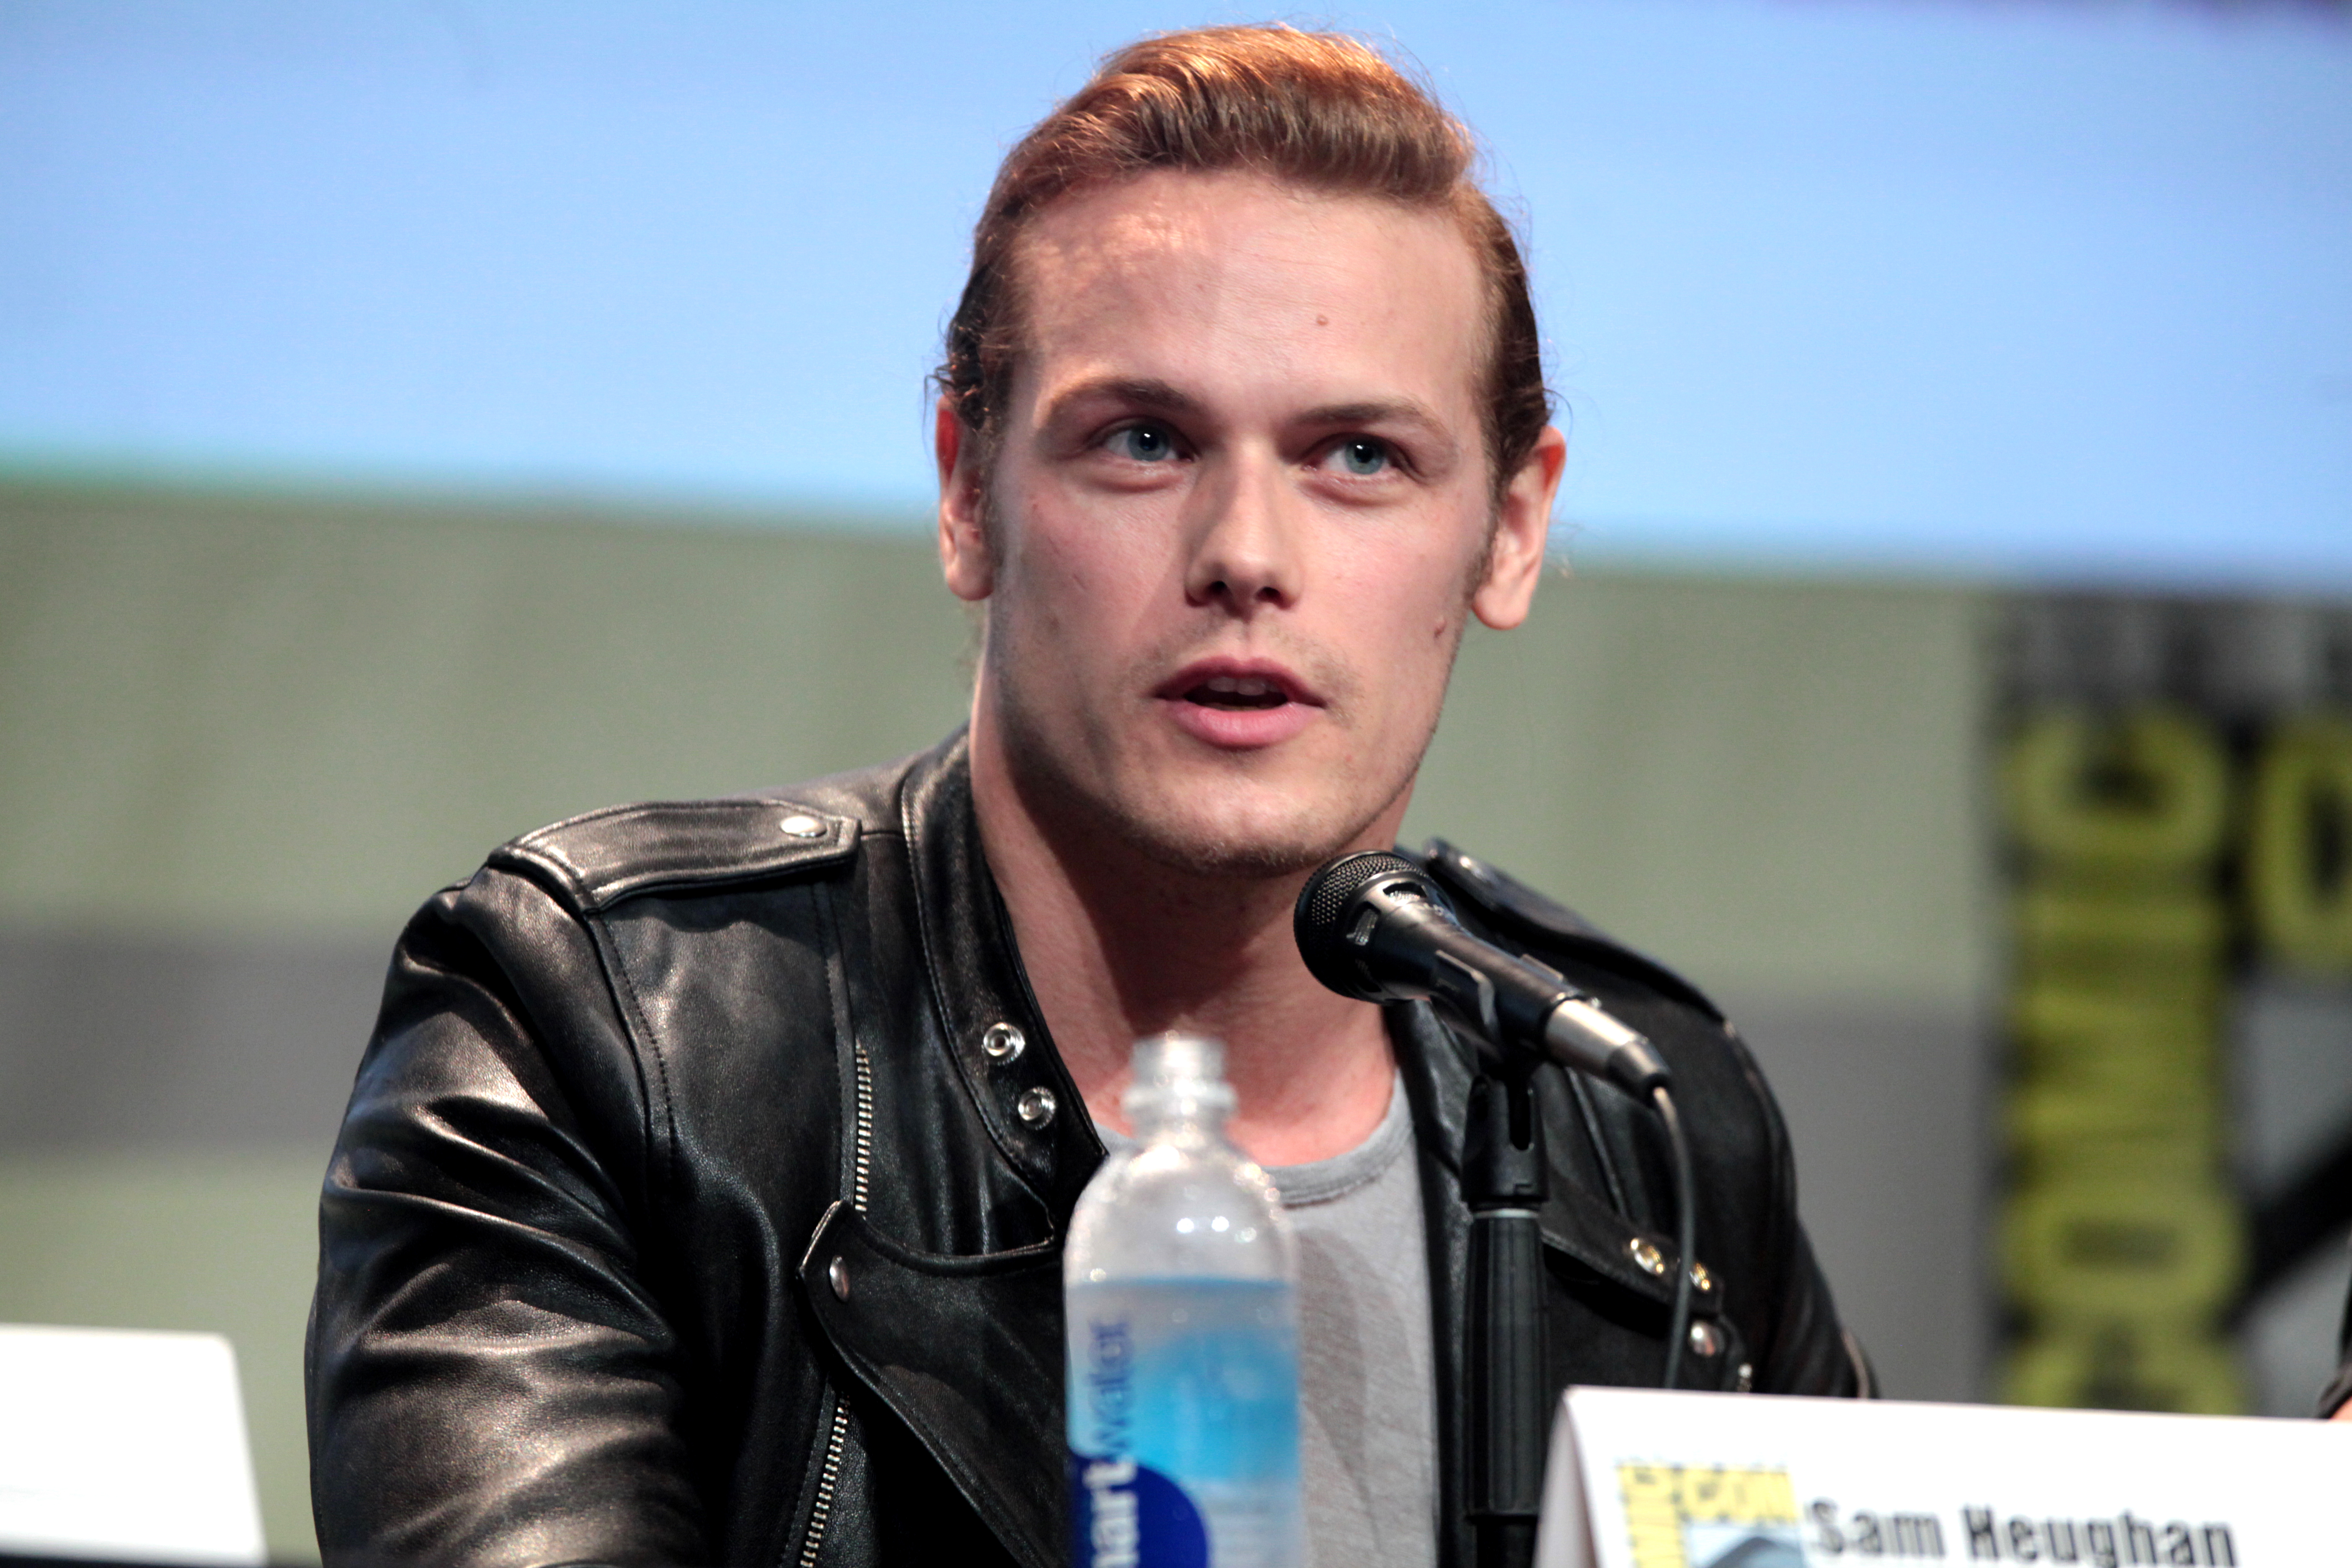 sam heughan life and career edit